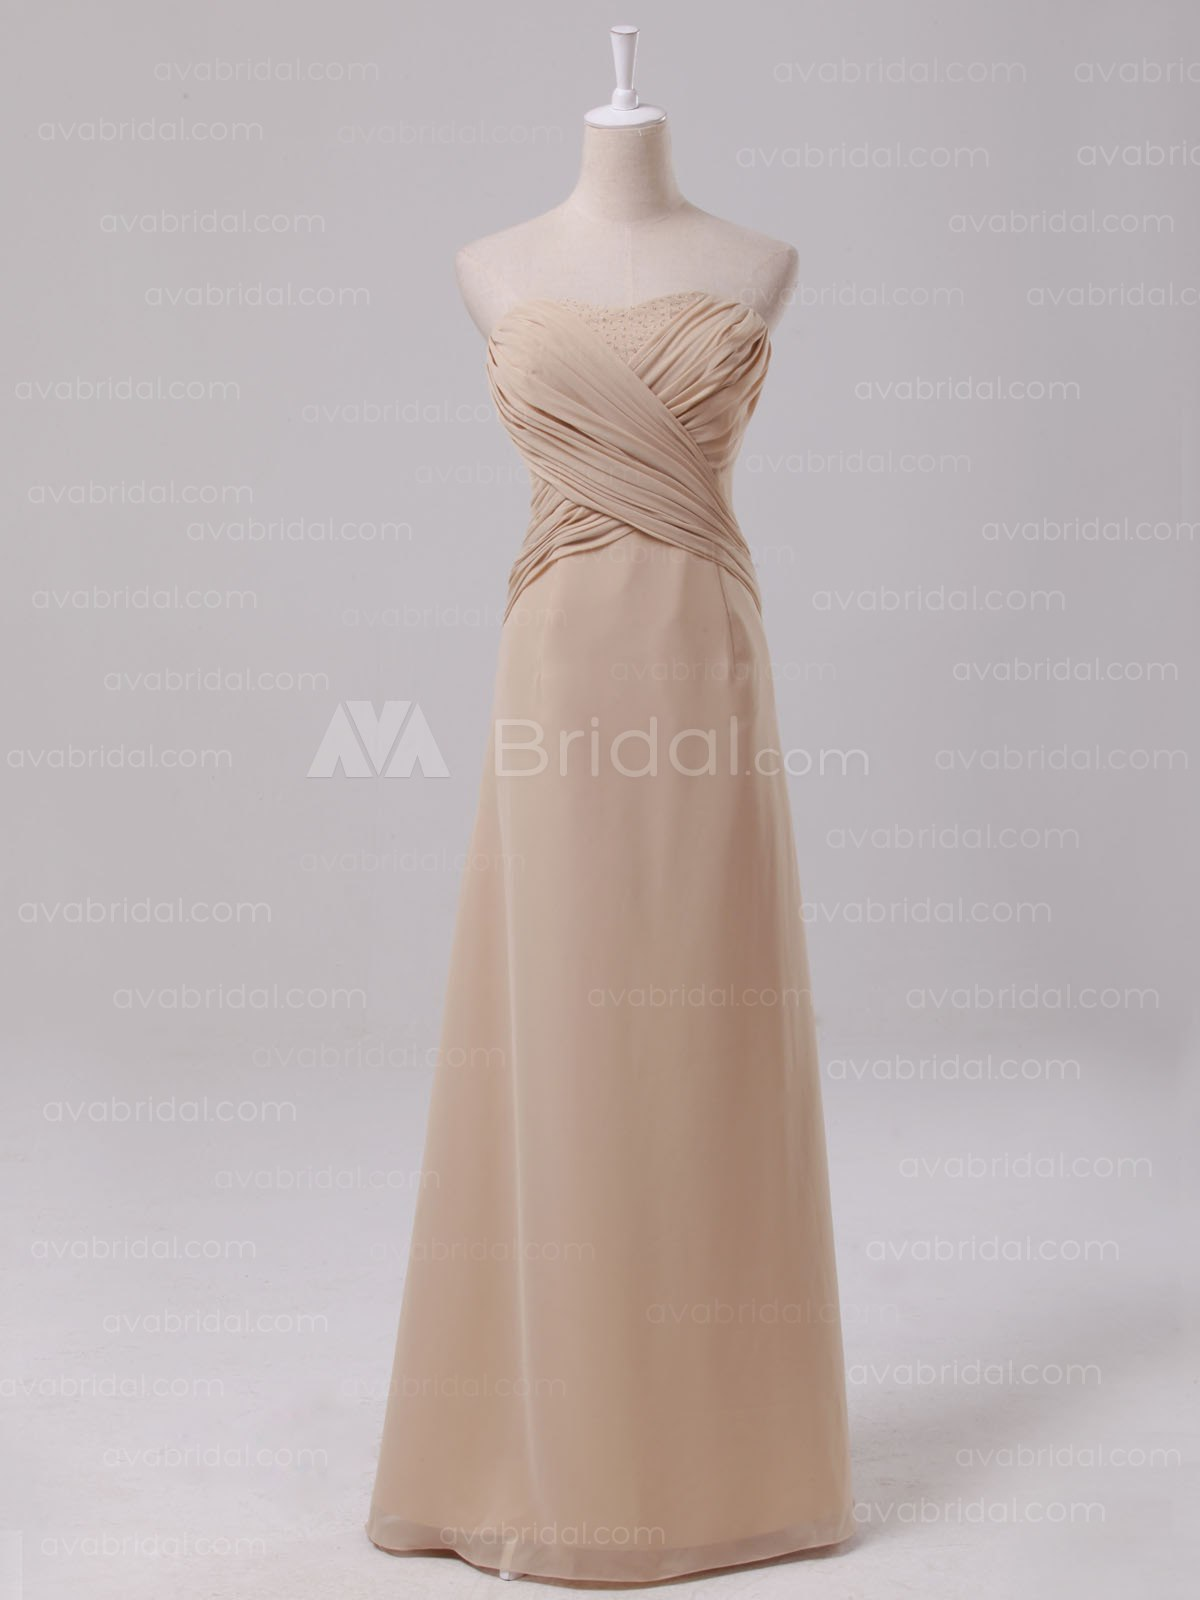 Dramatic Sheath Chiffon Bridesmaid Dress B466-Front